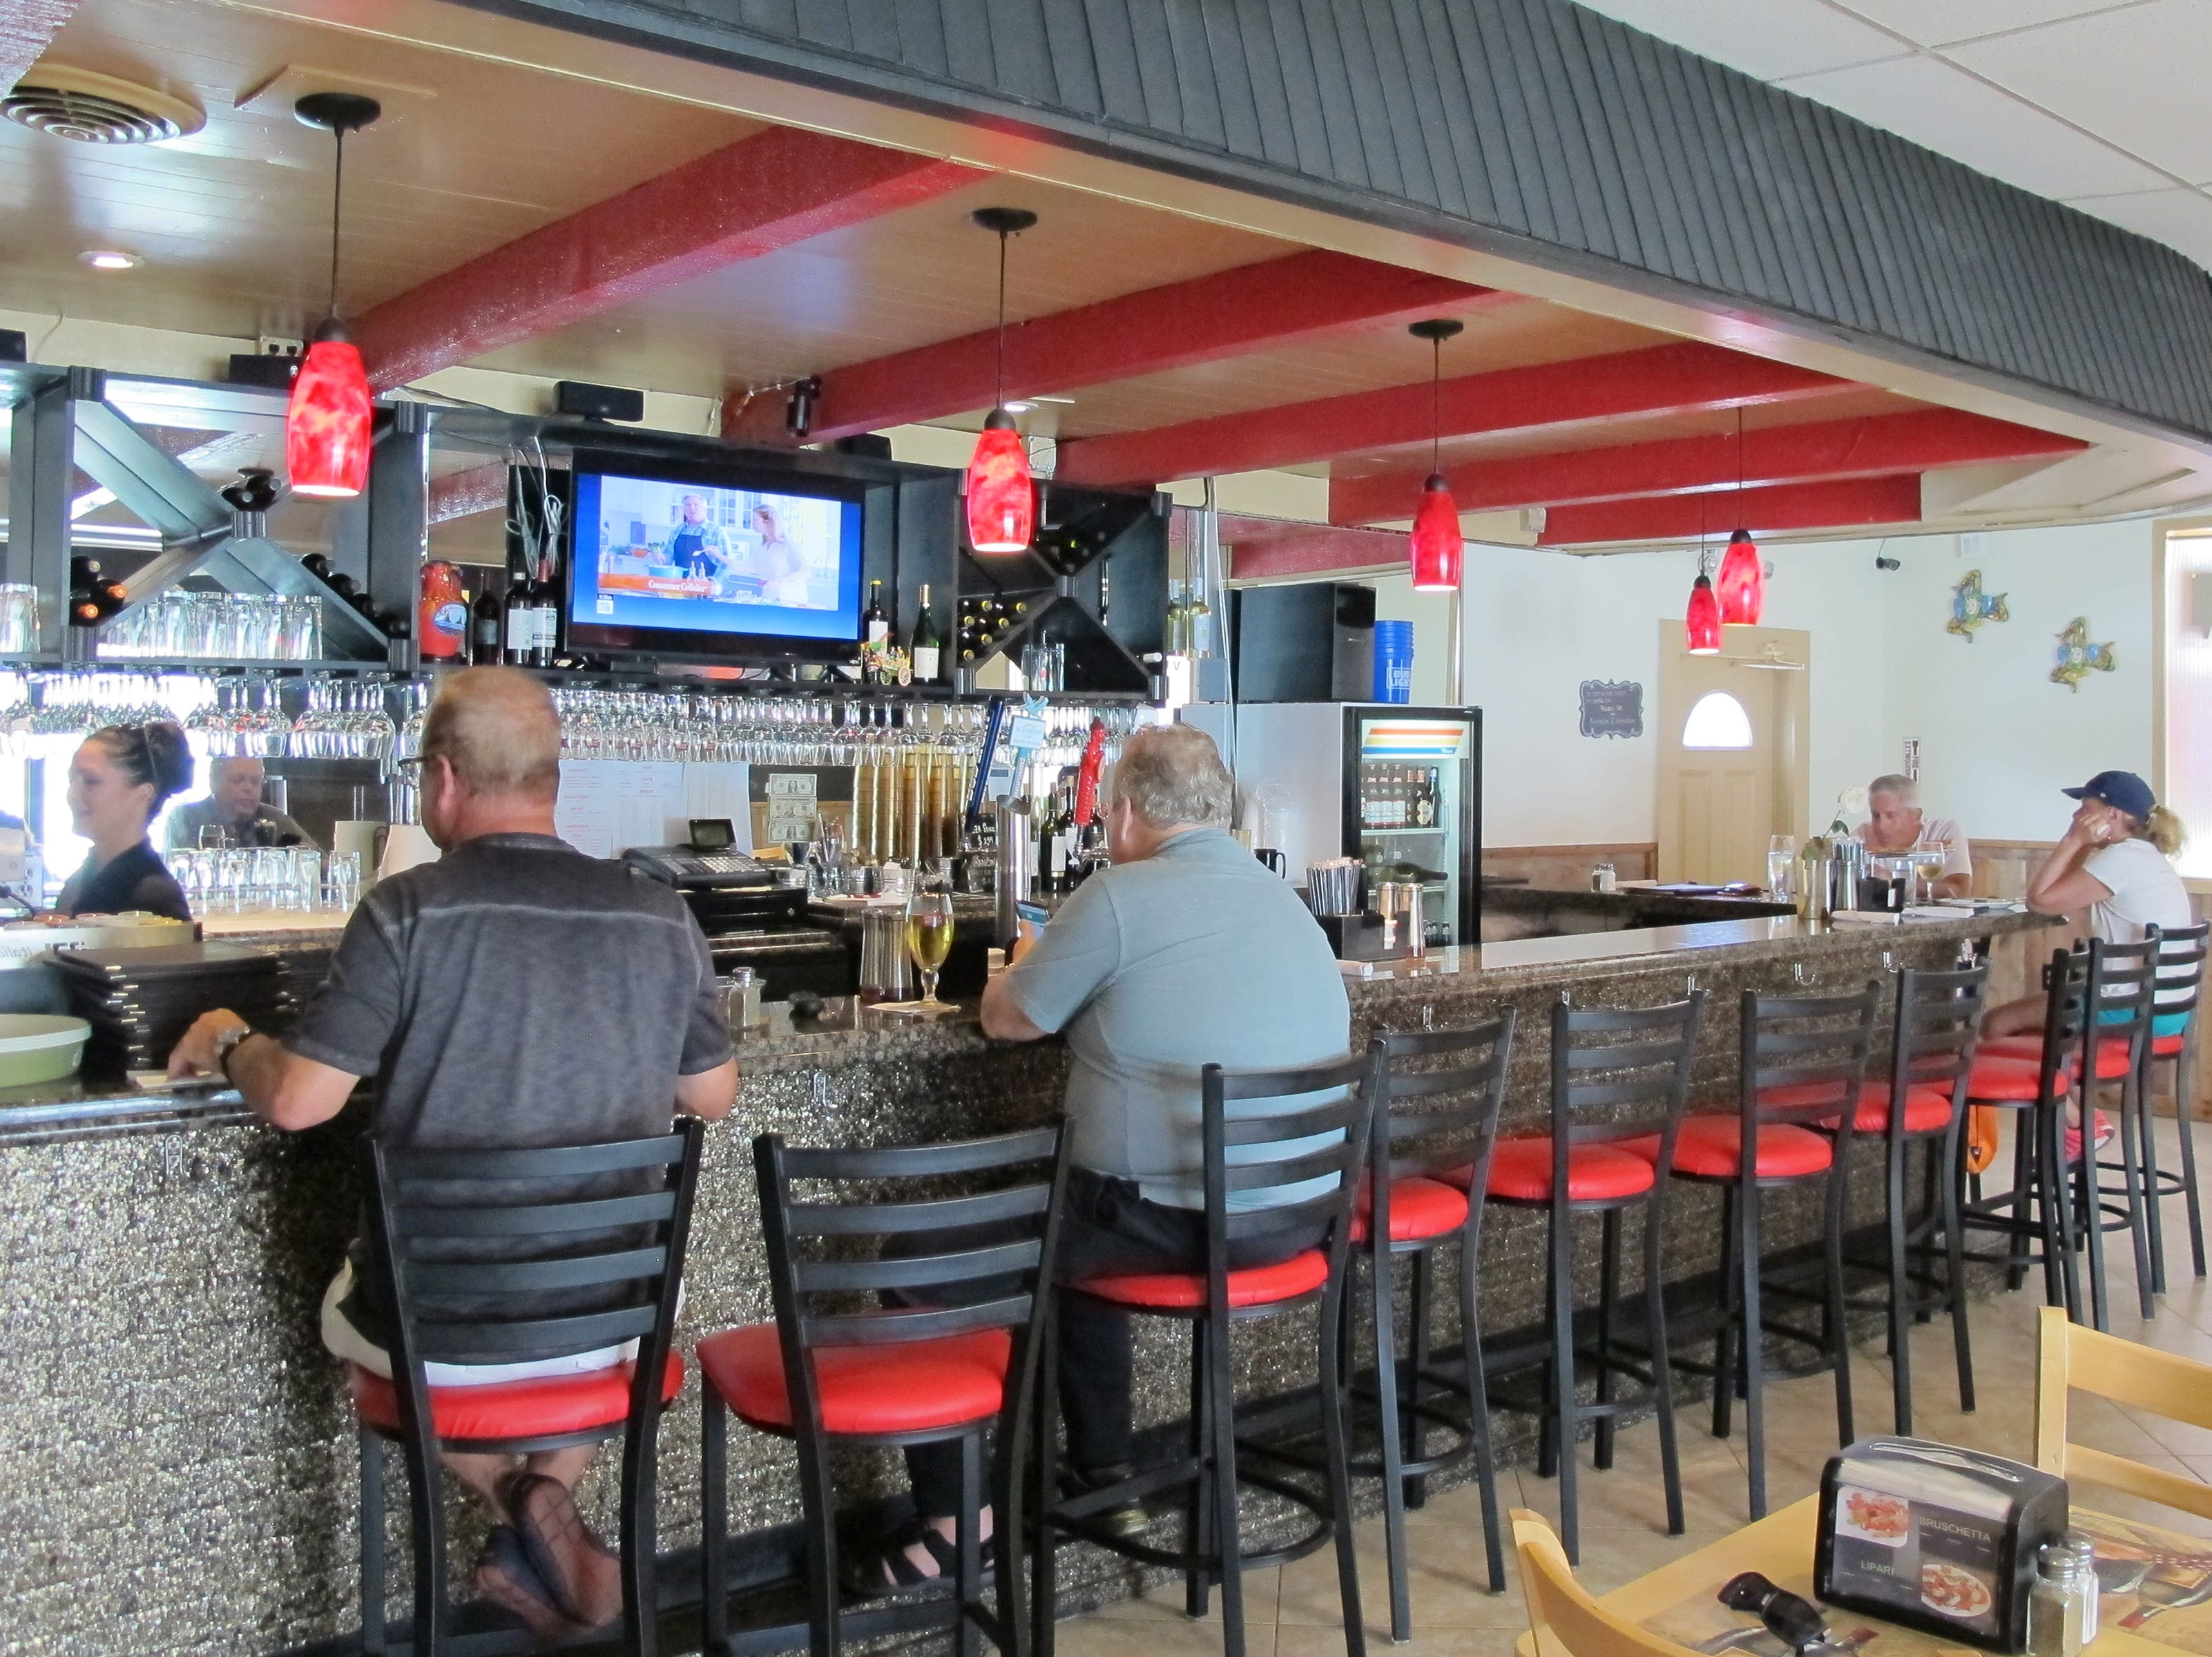 The bar at Sicilia Italian restaurant, which opened this season on Bayshore Drive in East Naples.